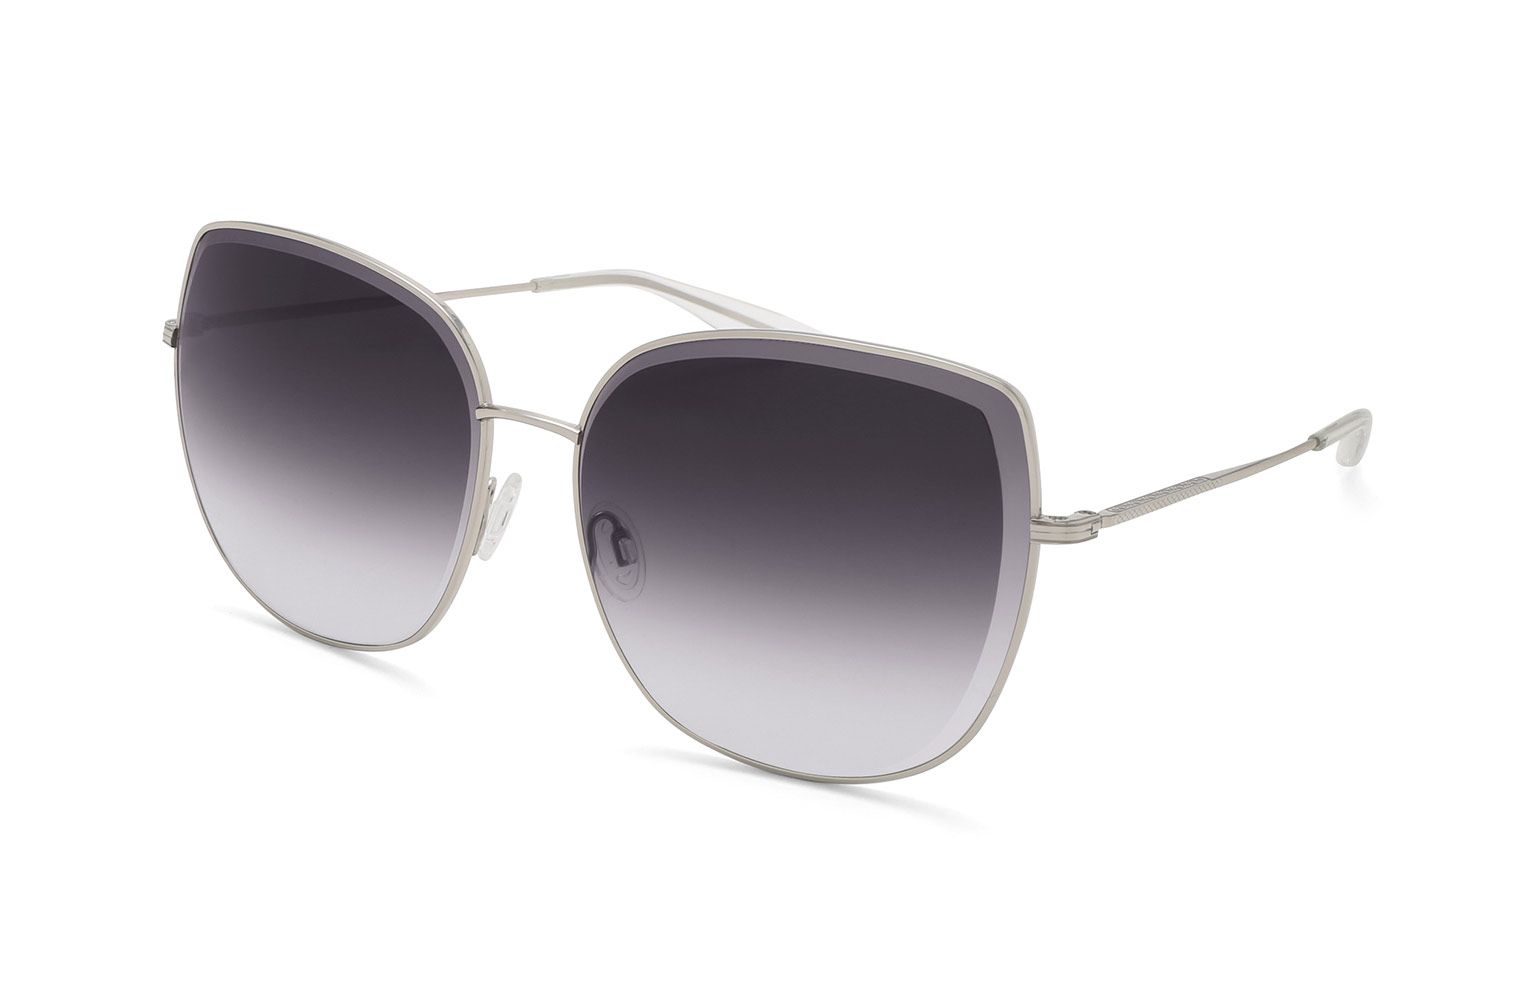 Barton Perreira Espiritu sunglasses at Risi Optique | Barton ...